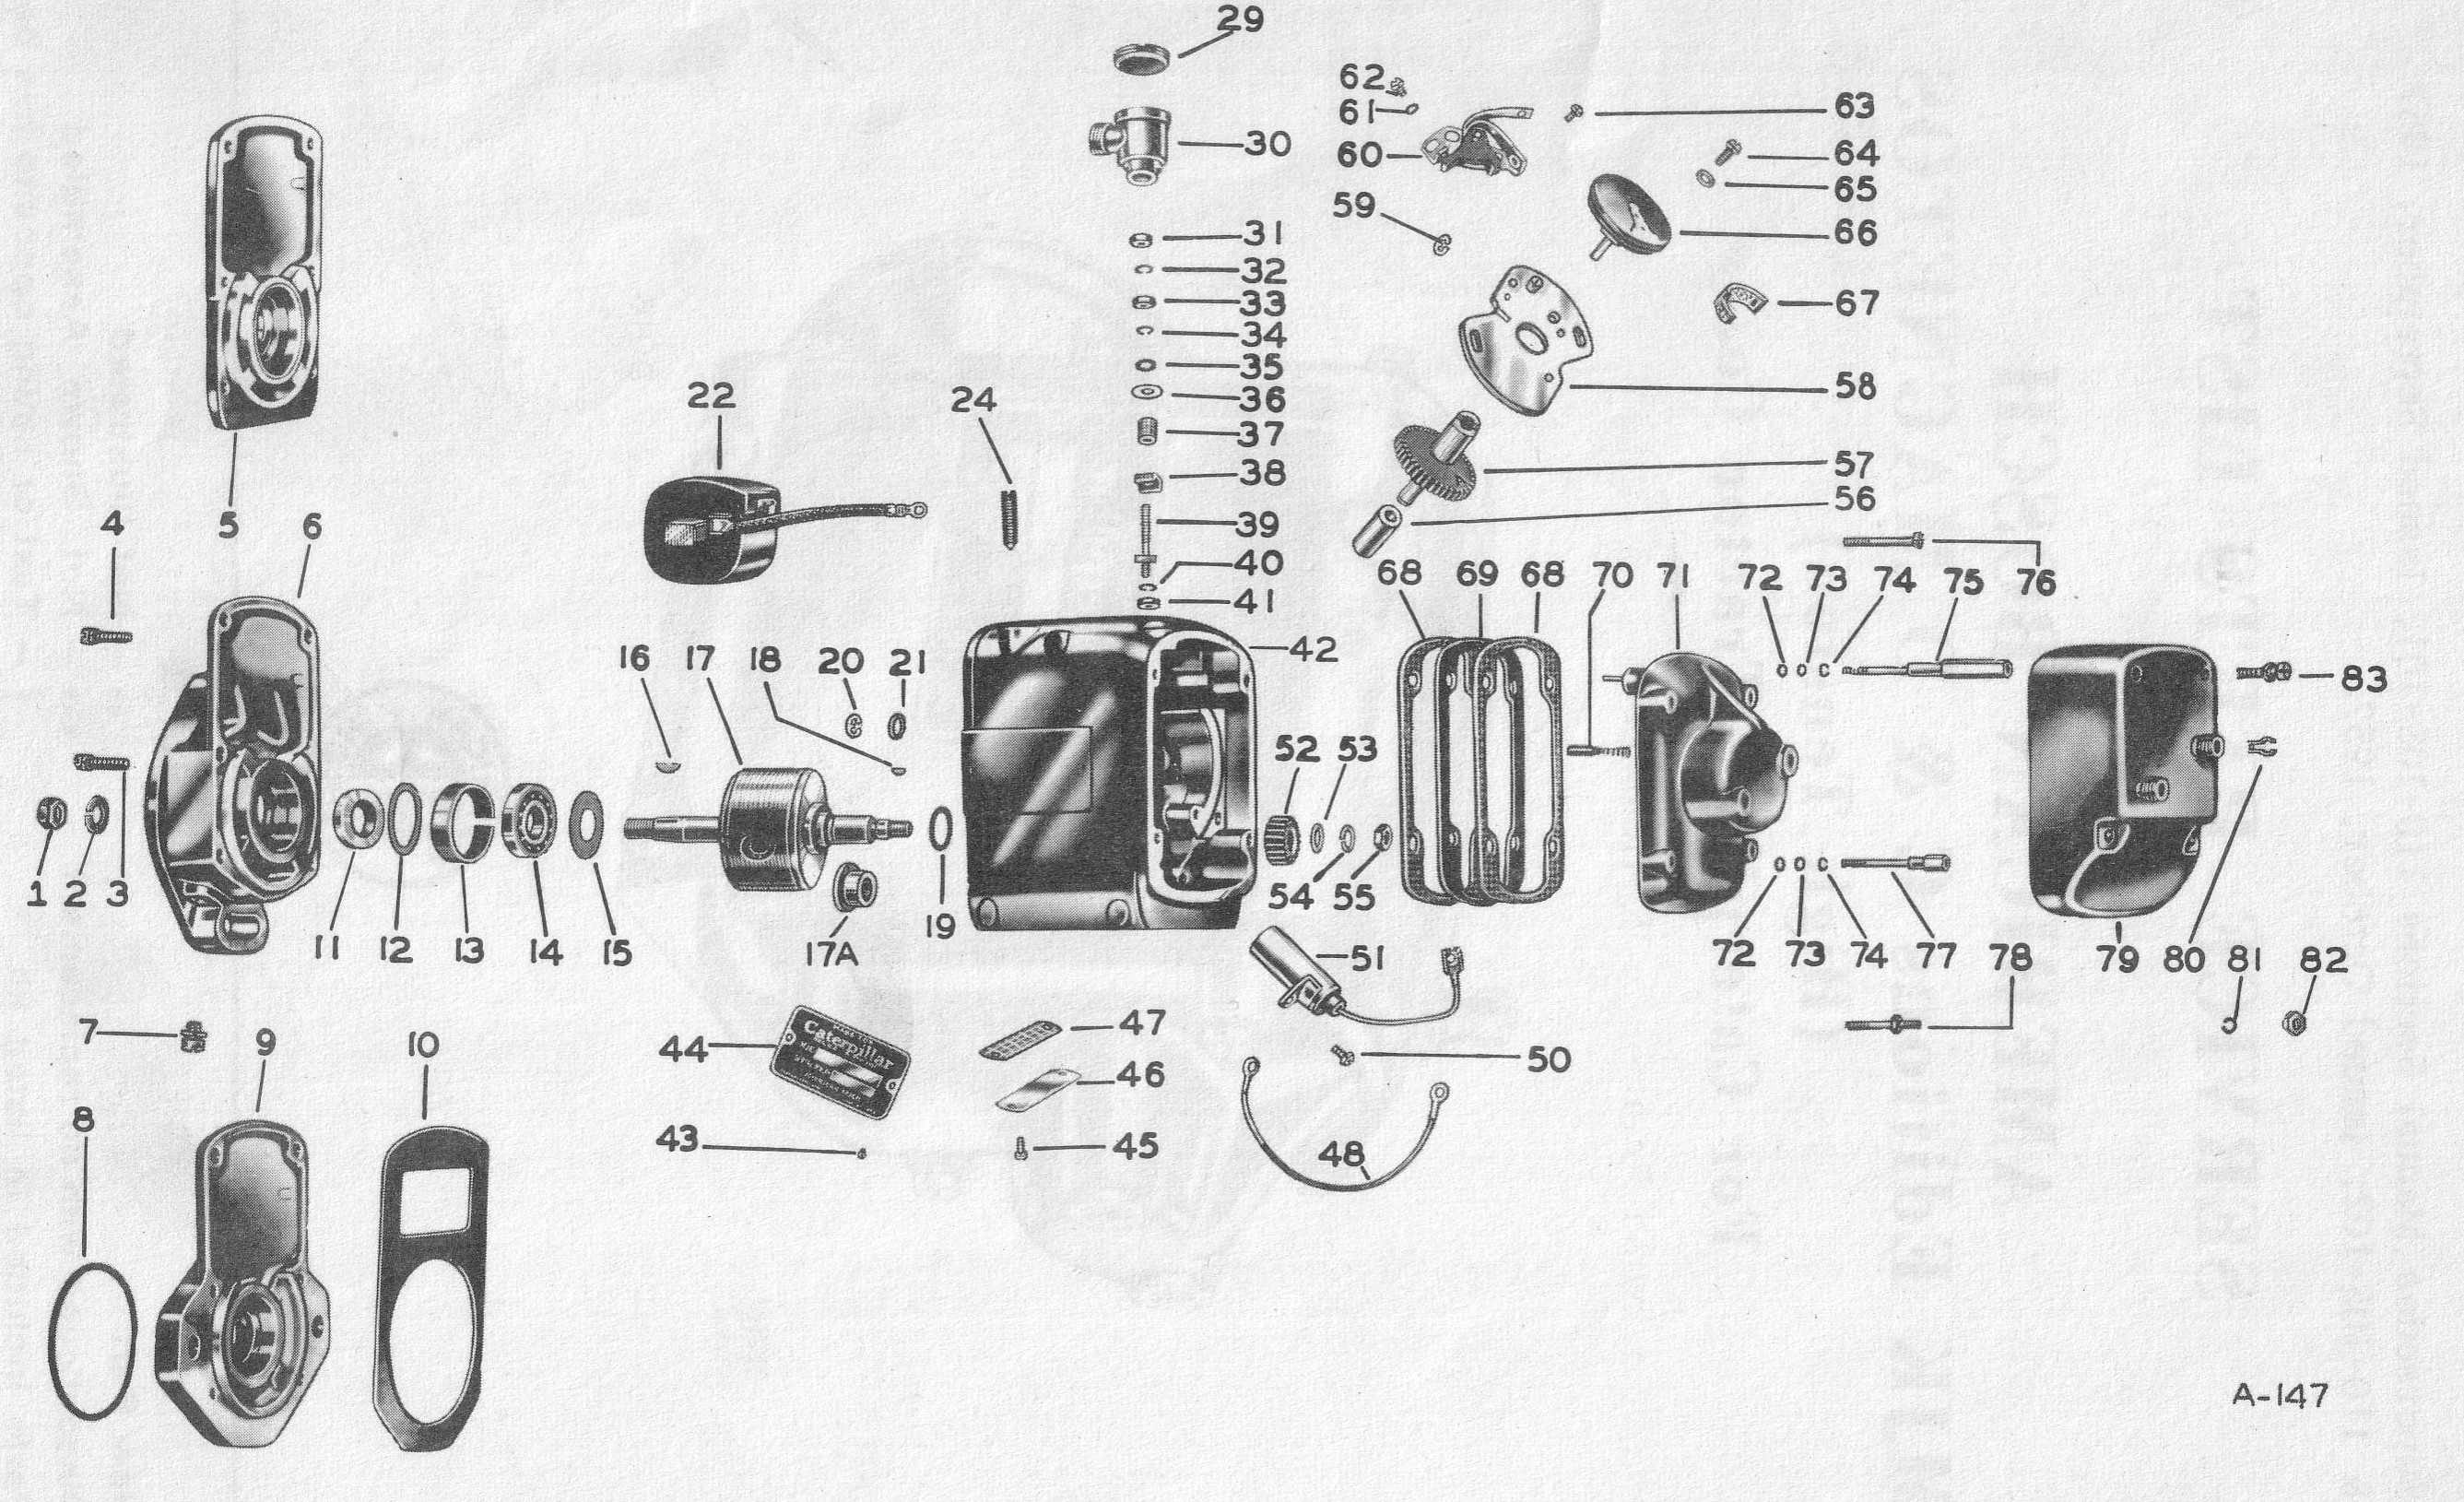 Magneto Parts Diagram | Wiring Schematic Diagram on magneto generator schematic, magneto diagram, magneto ignition,